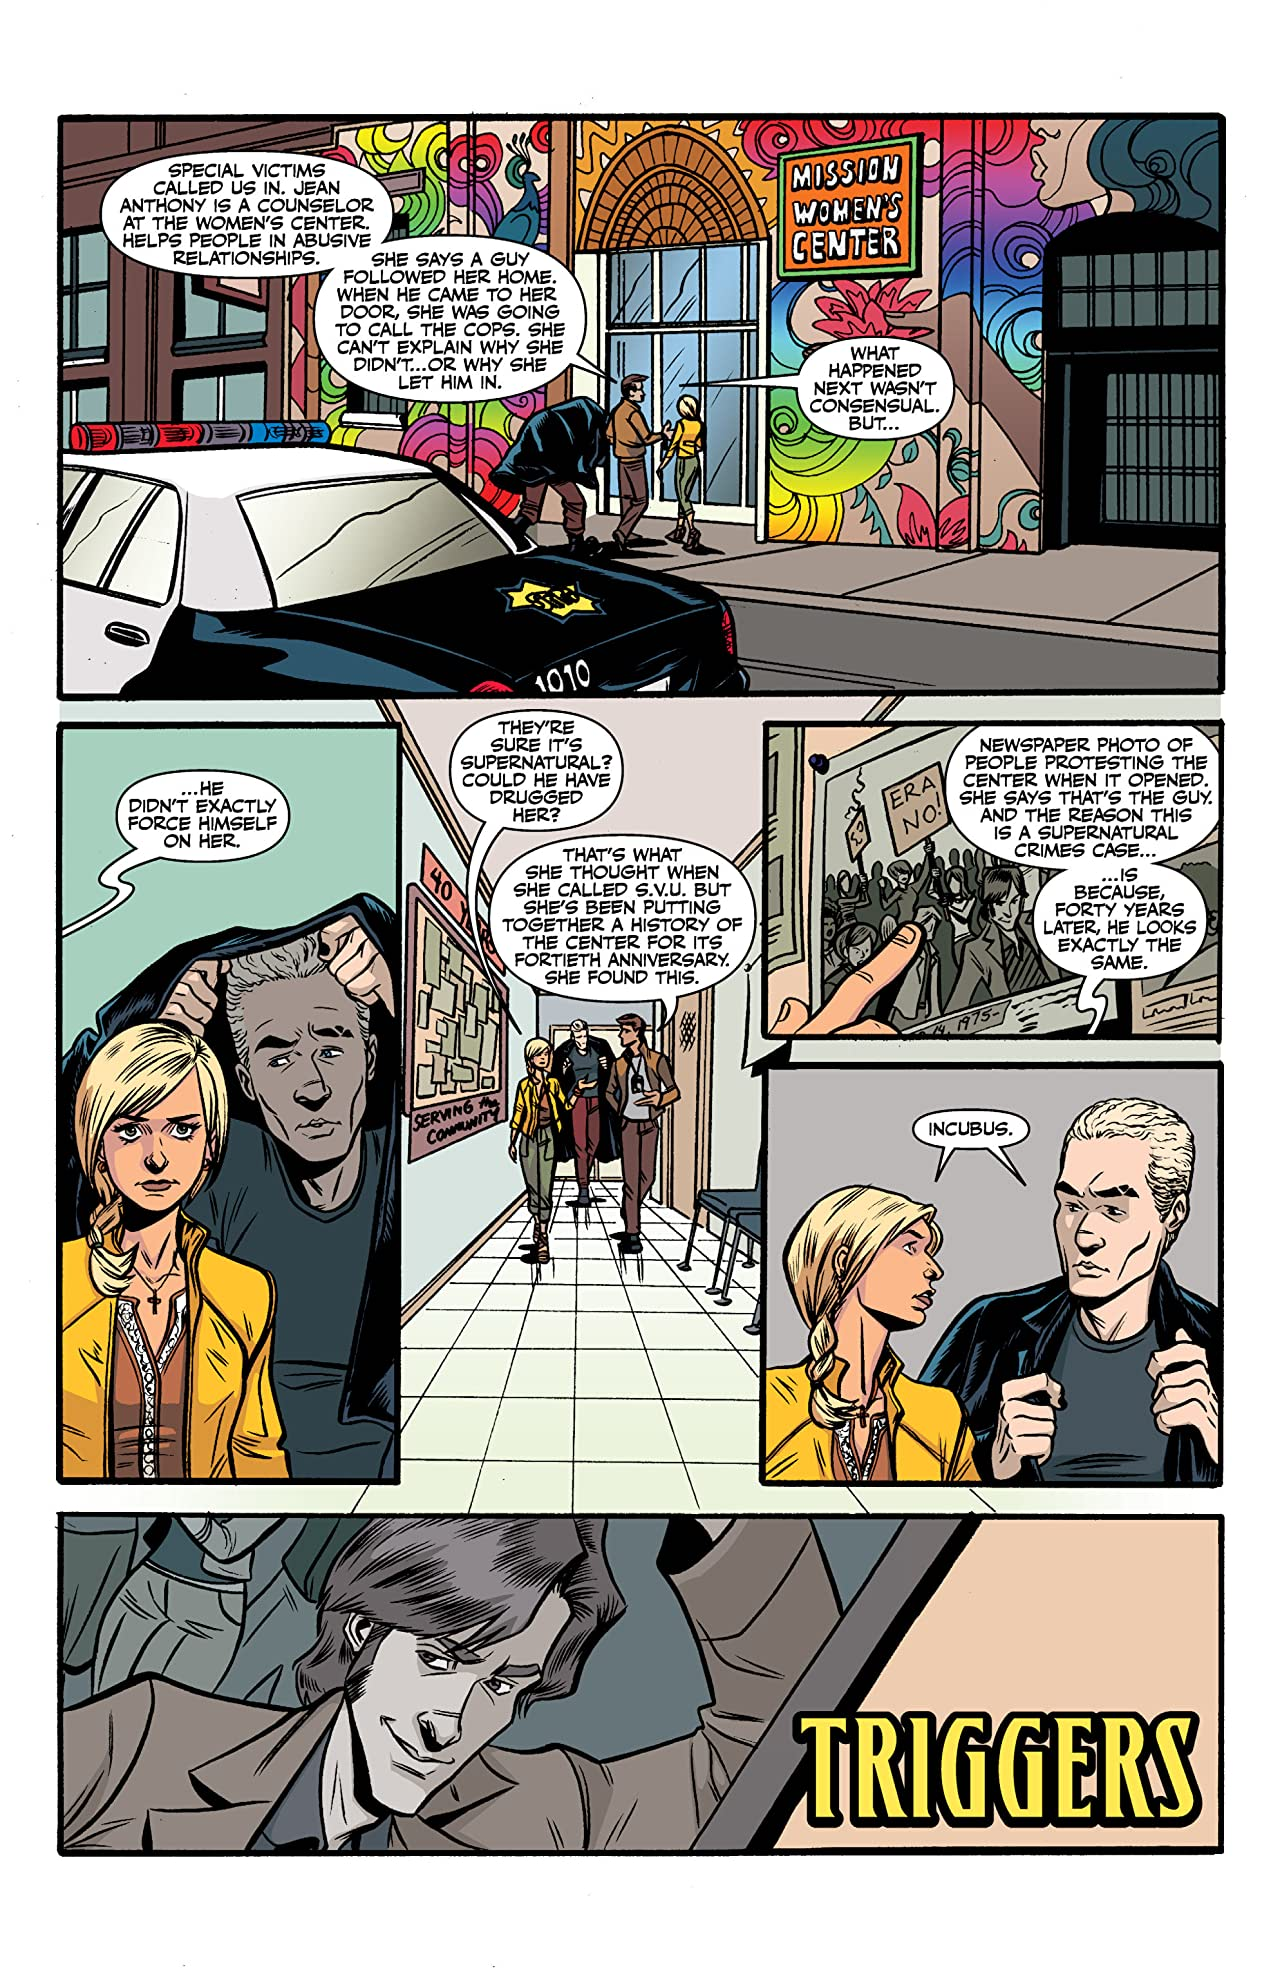 Buffy the Vampire Slayer: Season 10 #20